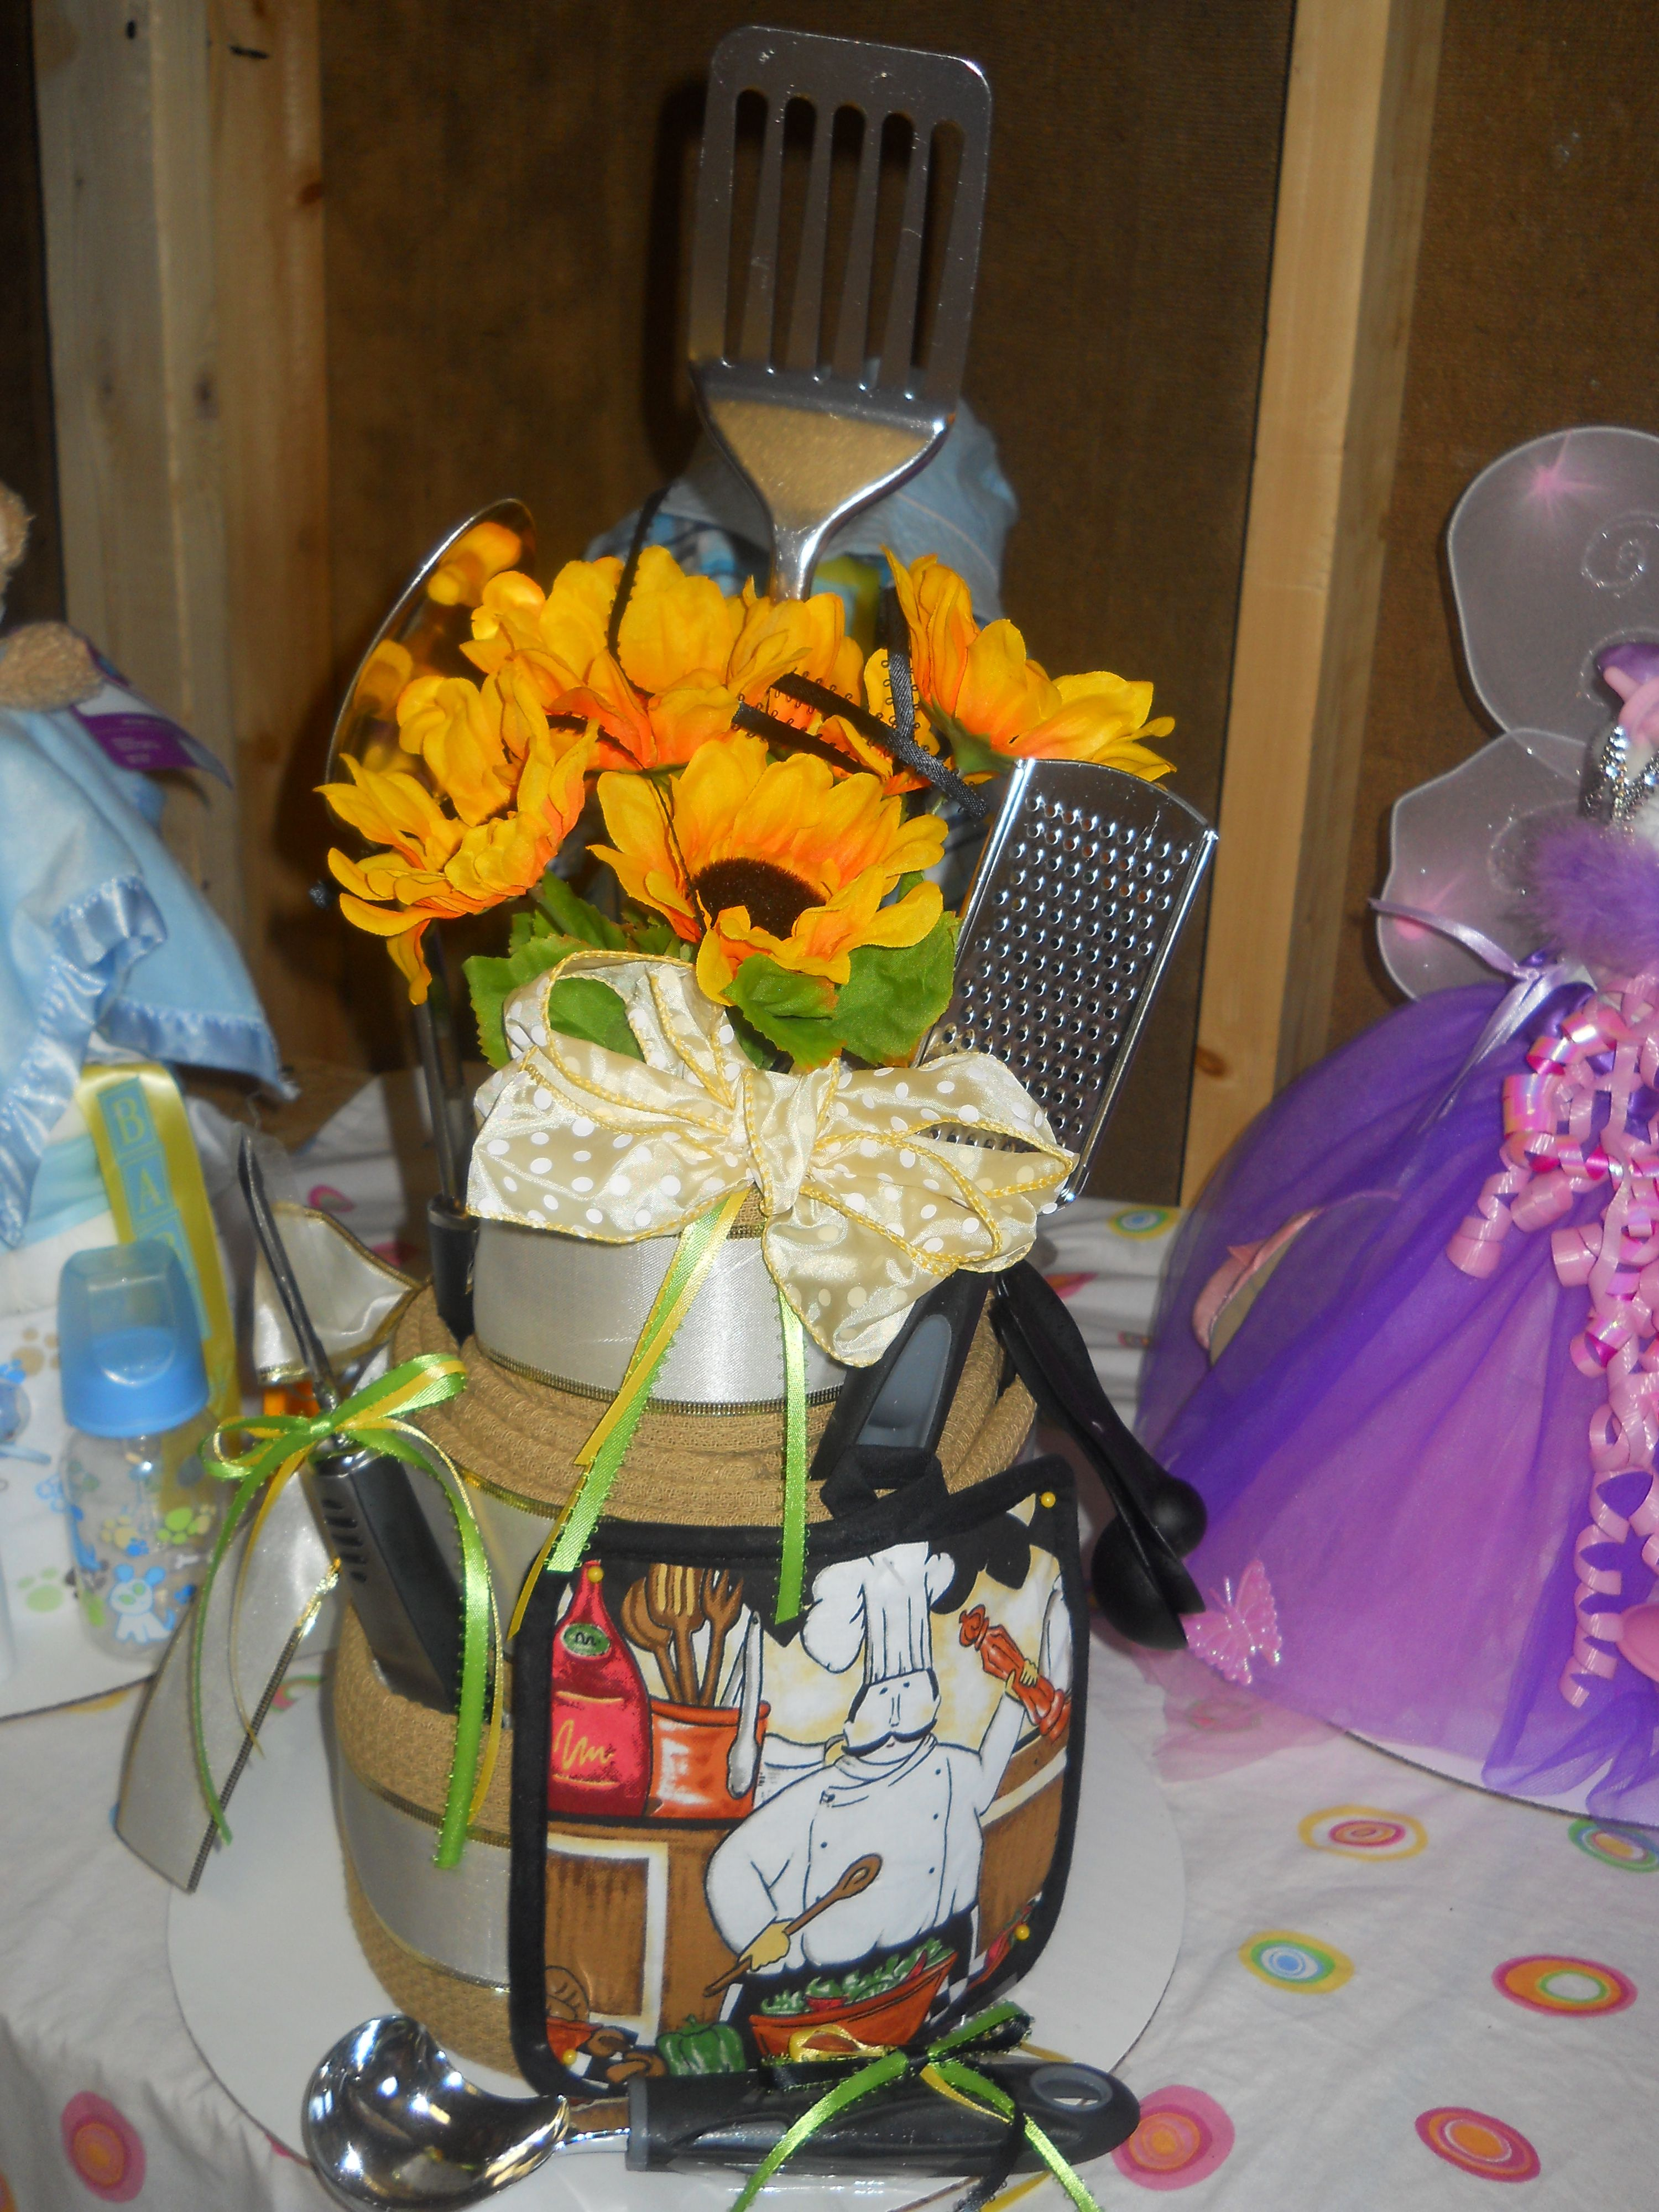 Housewarming Gifts Ideas Inexpensive Centerpiece For House Warming Are Bridal Shower Stuff I